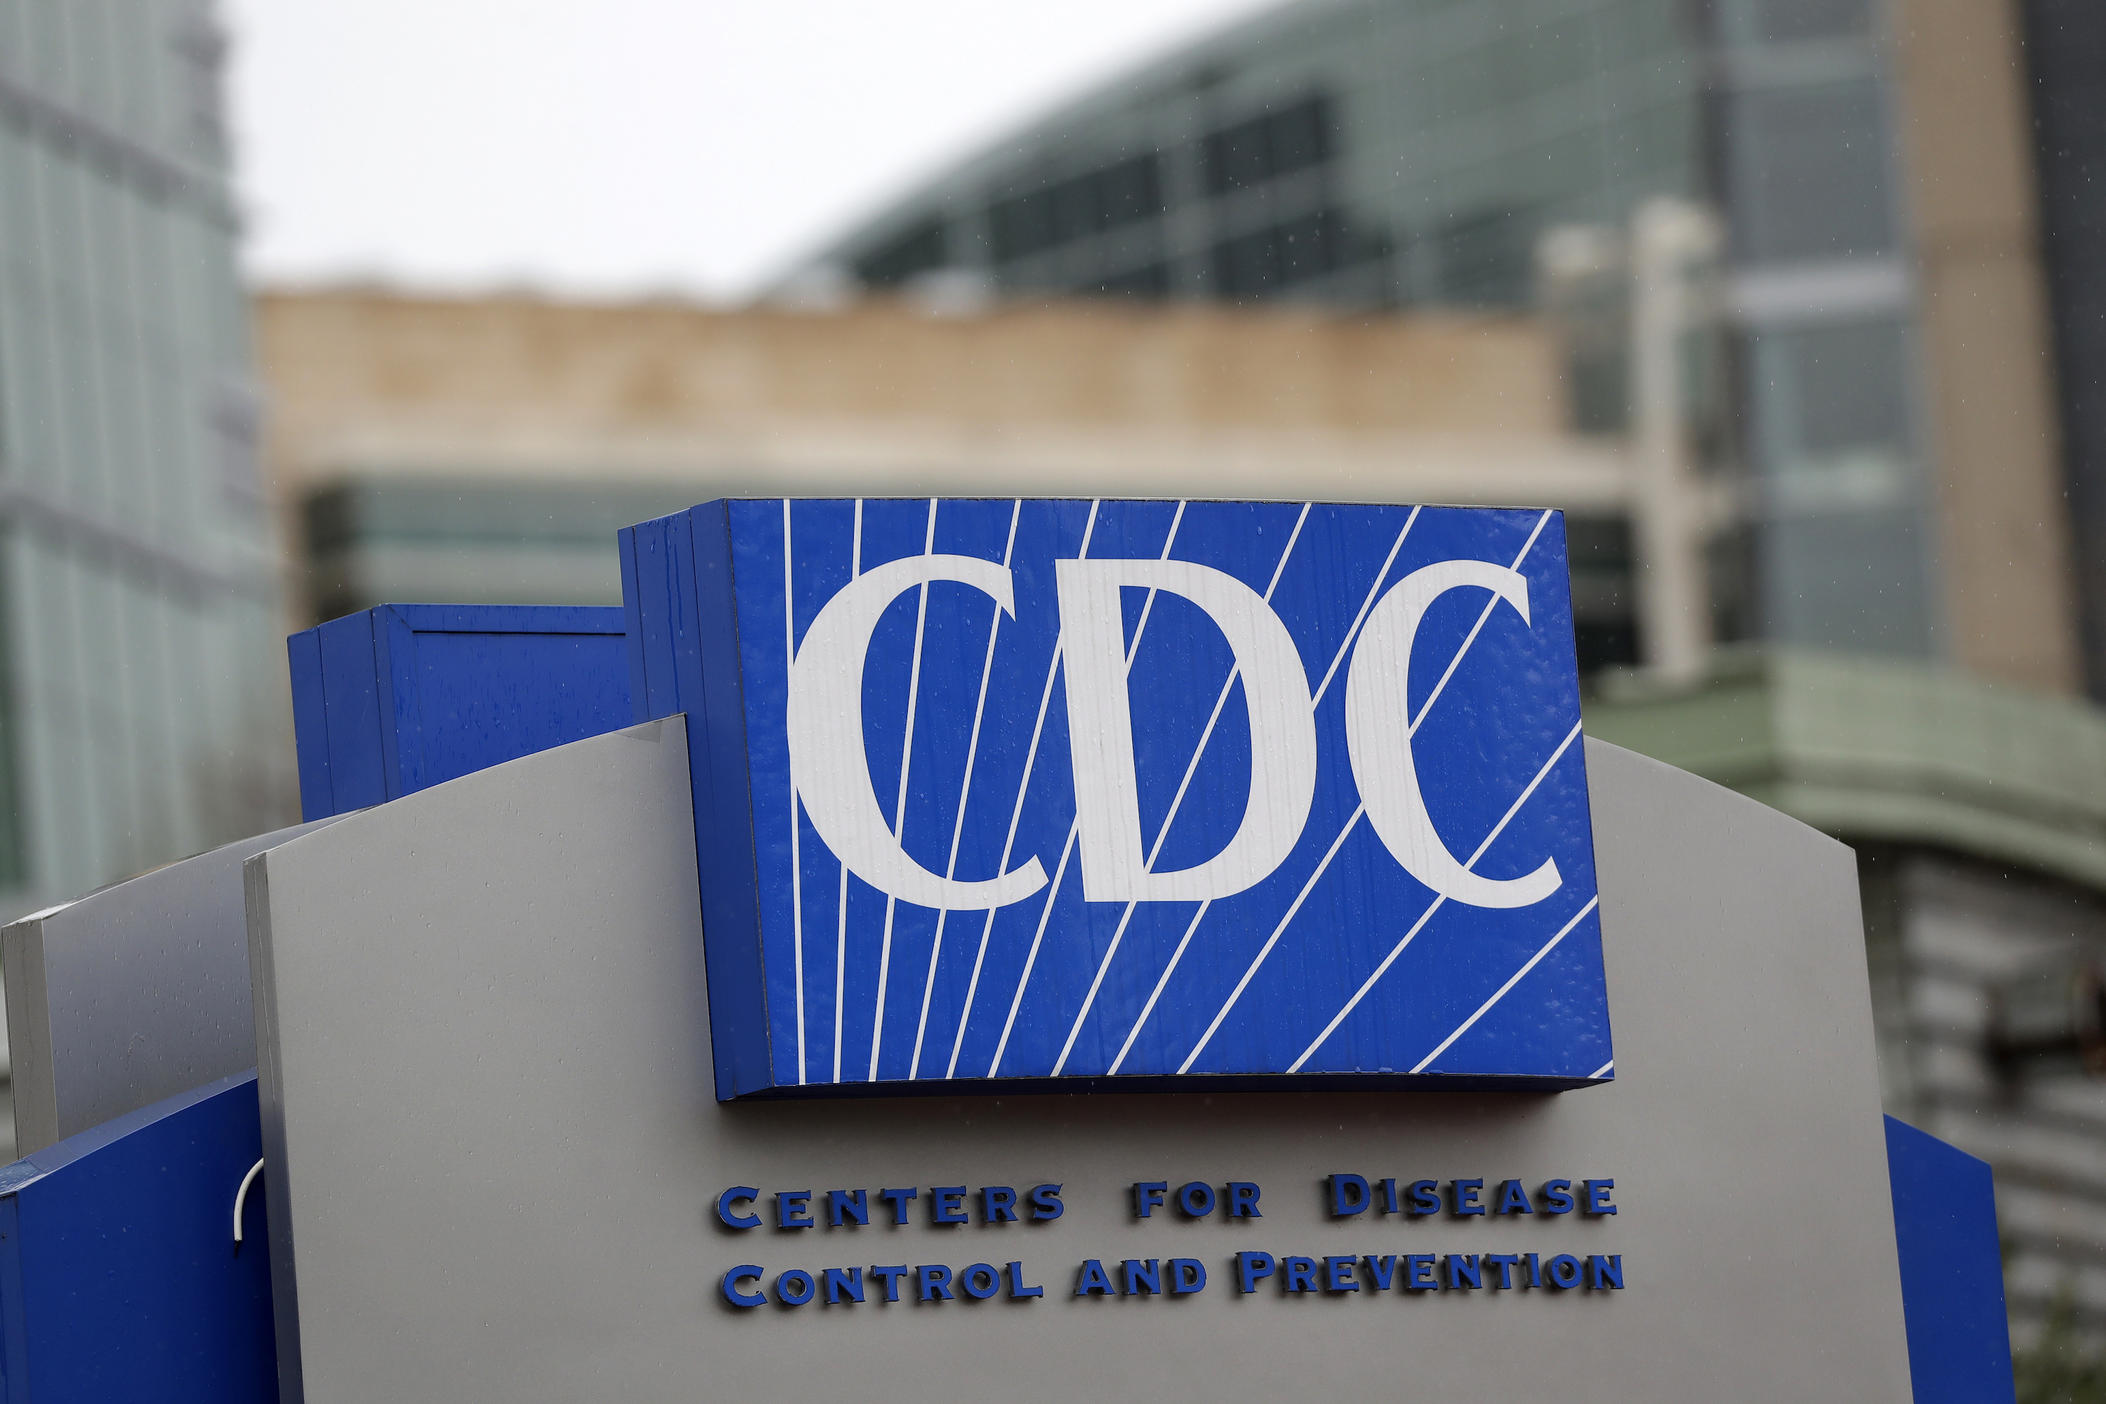 The Centers for Disease Control and Prevention in Atlanta